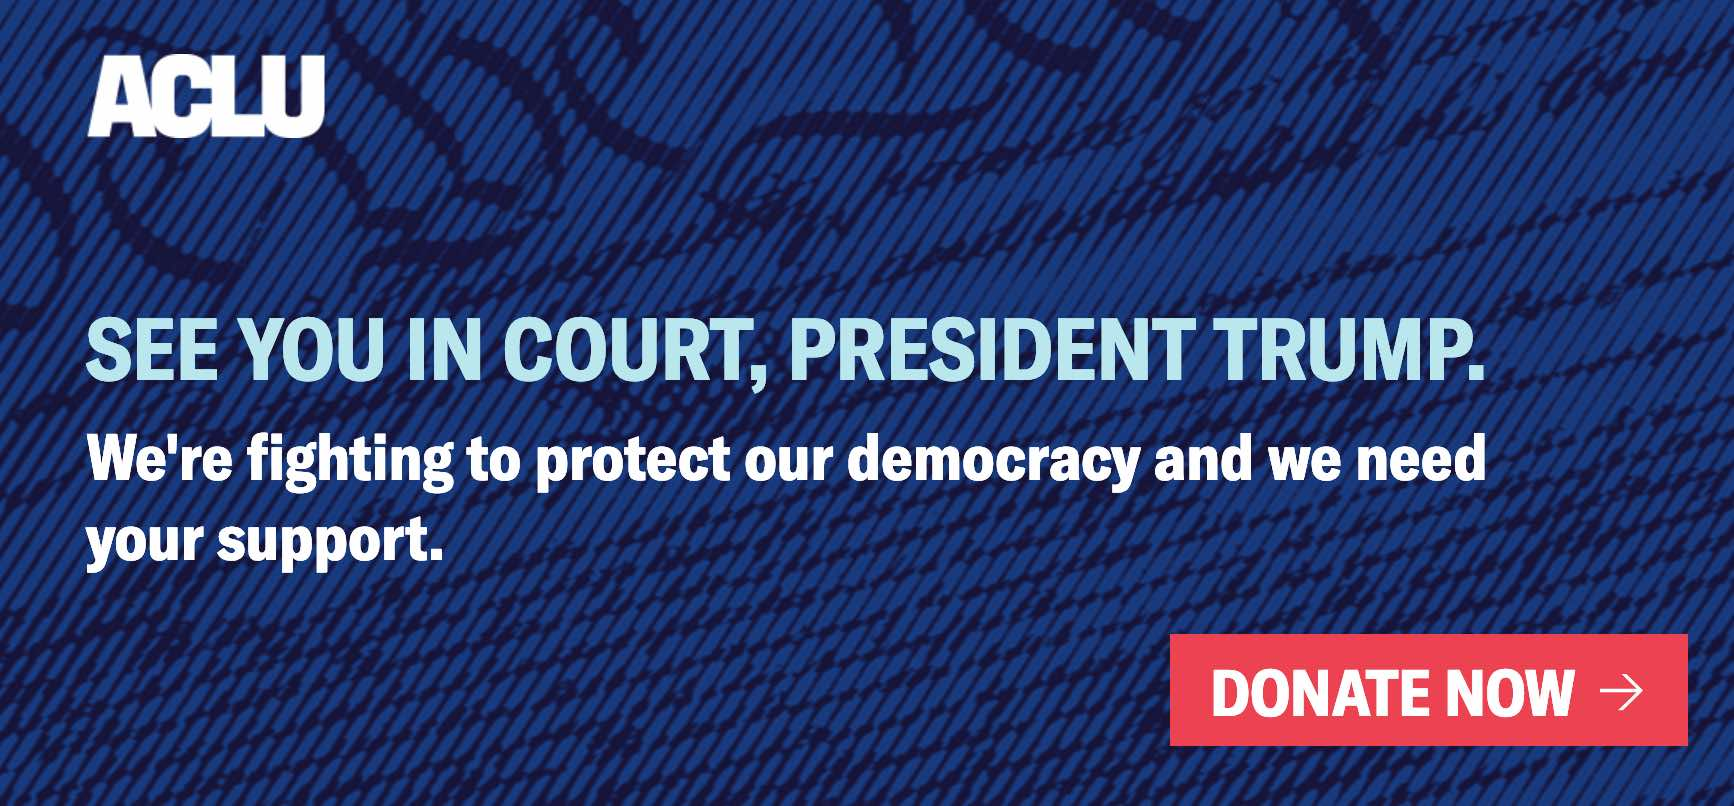 See you in court -- Love, the ACLU